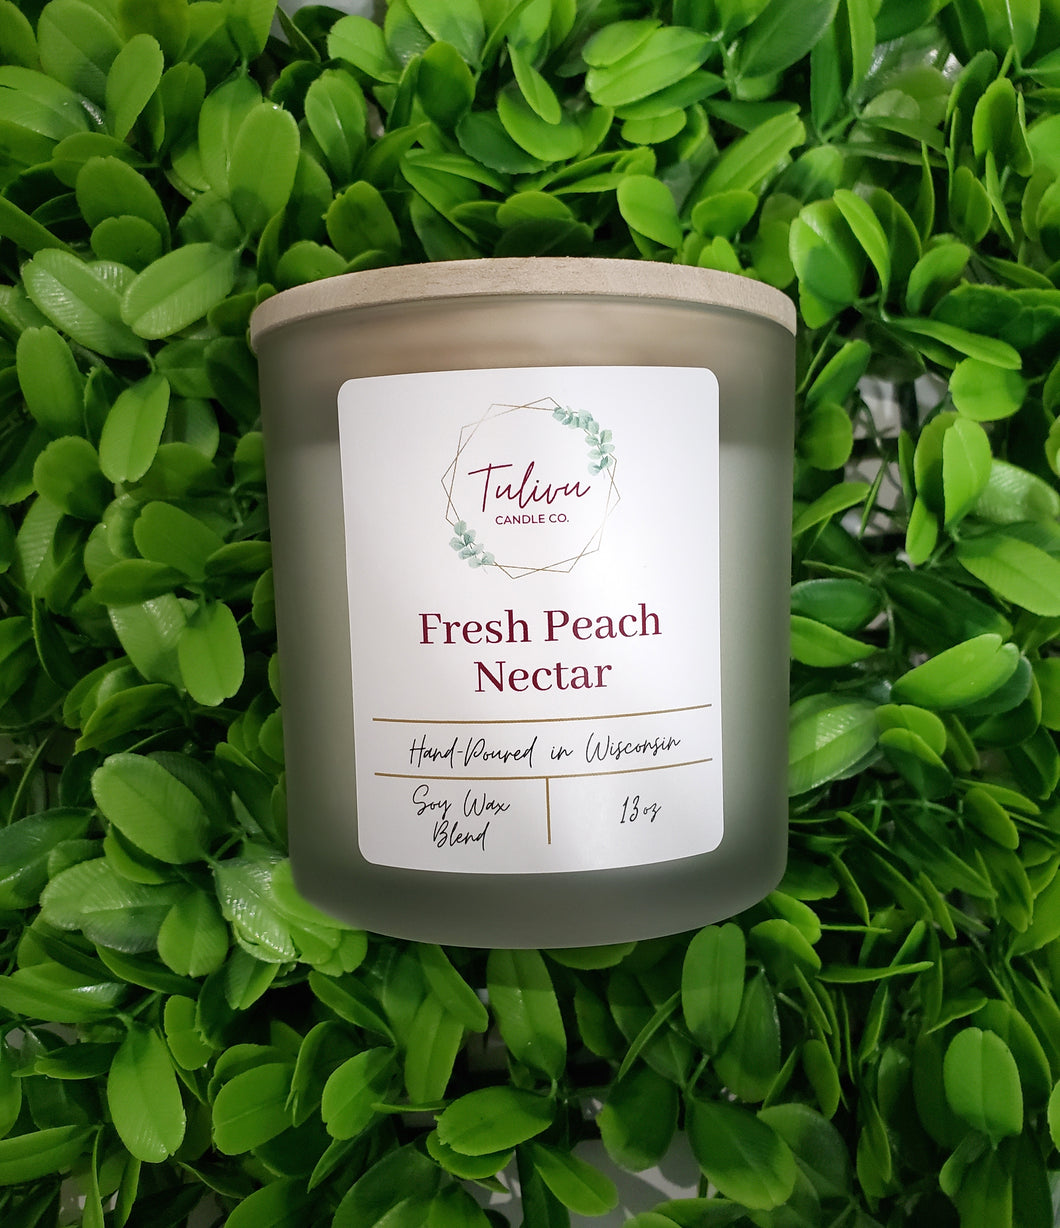 Fresh Peach Nectar Candle